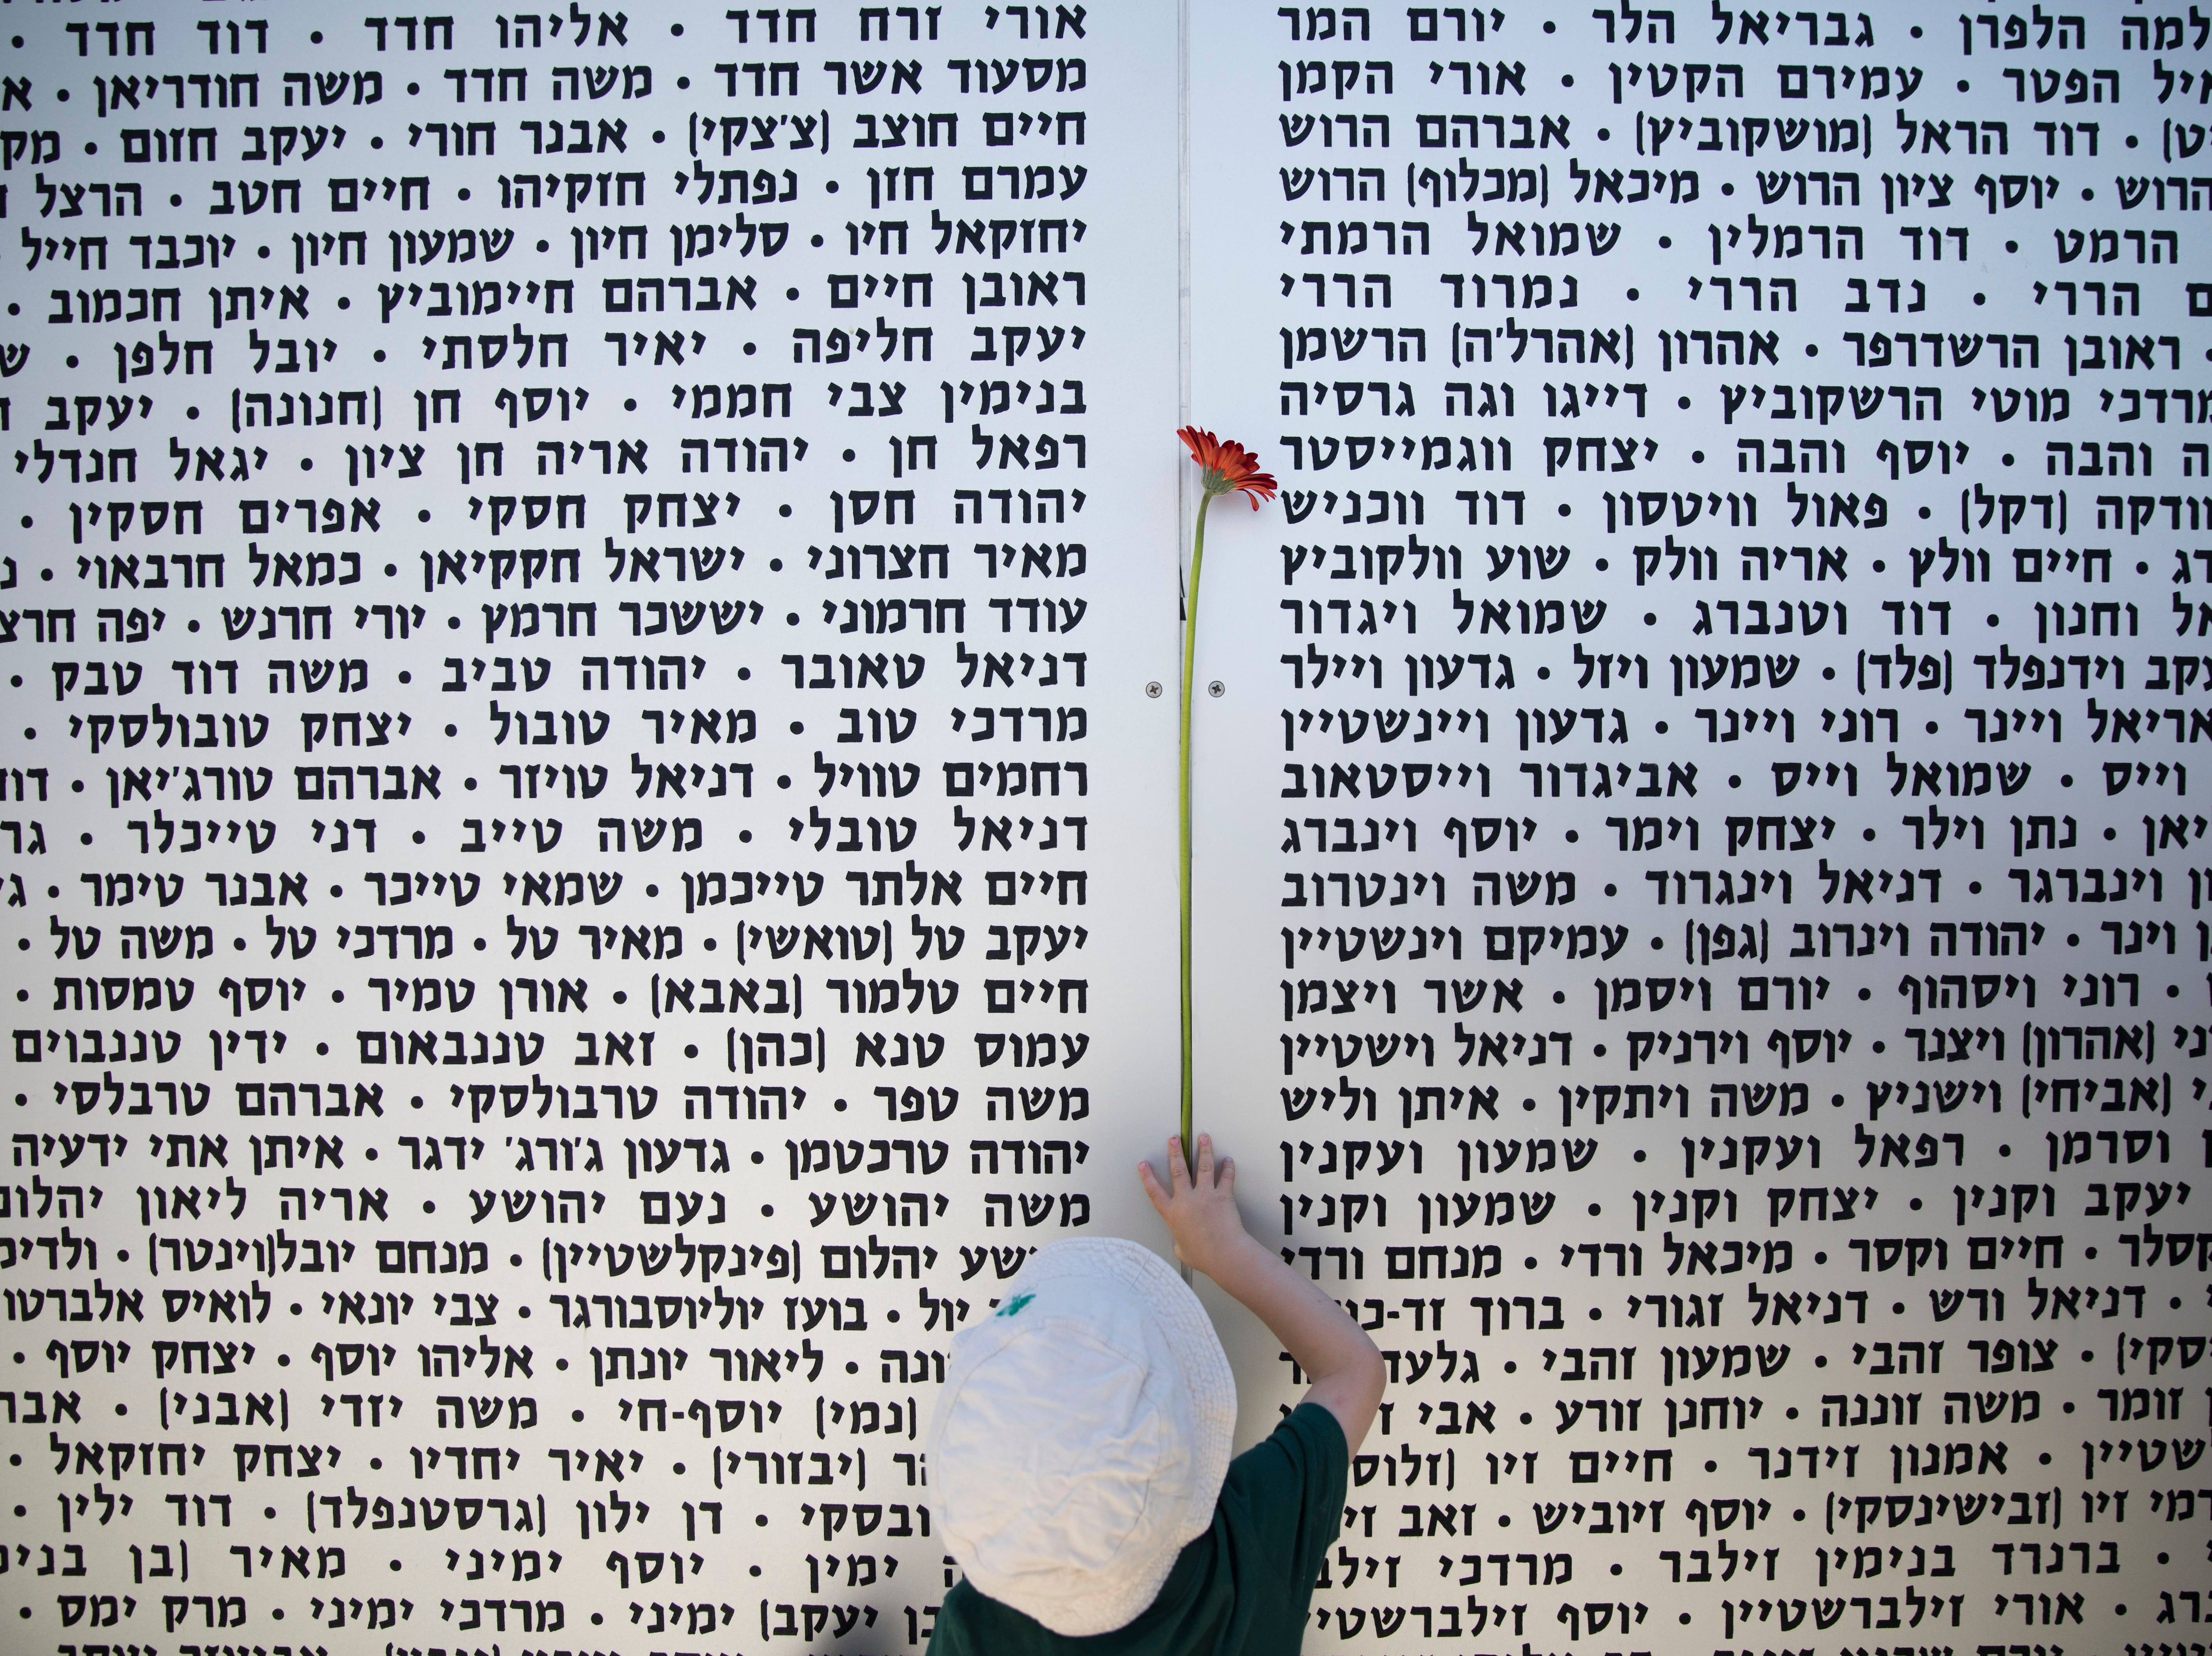 A boy hangs a rose on a wall of names following a ceremony marking the annual Memorial Day to remember fallen soldiers and victims of terror, at the Armored Corps memorial site Wednesday in Latrun, Israel.